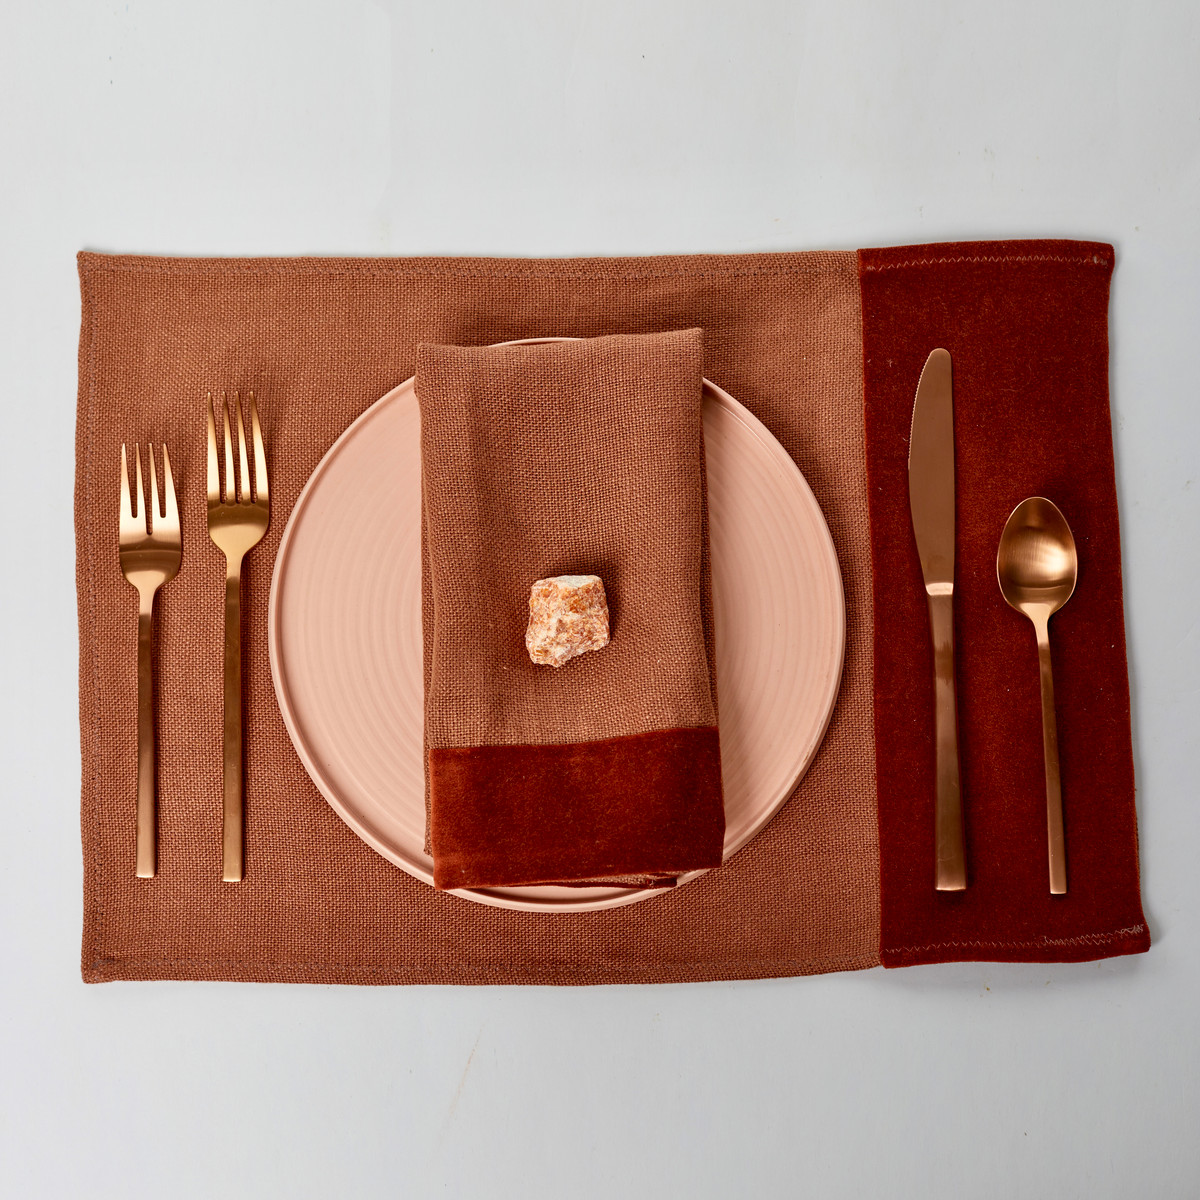 Alexis Red Jasper Linen Placemat - Place Setting